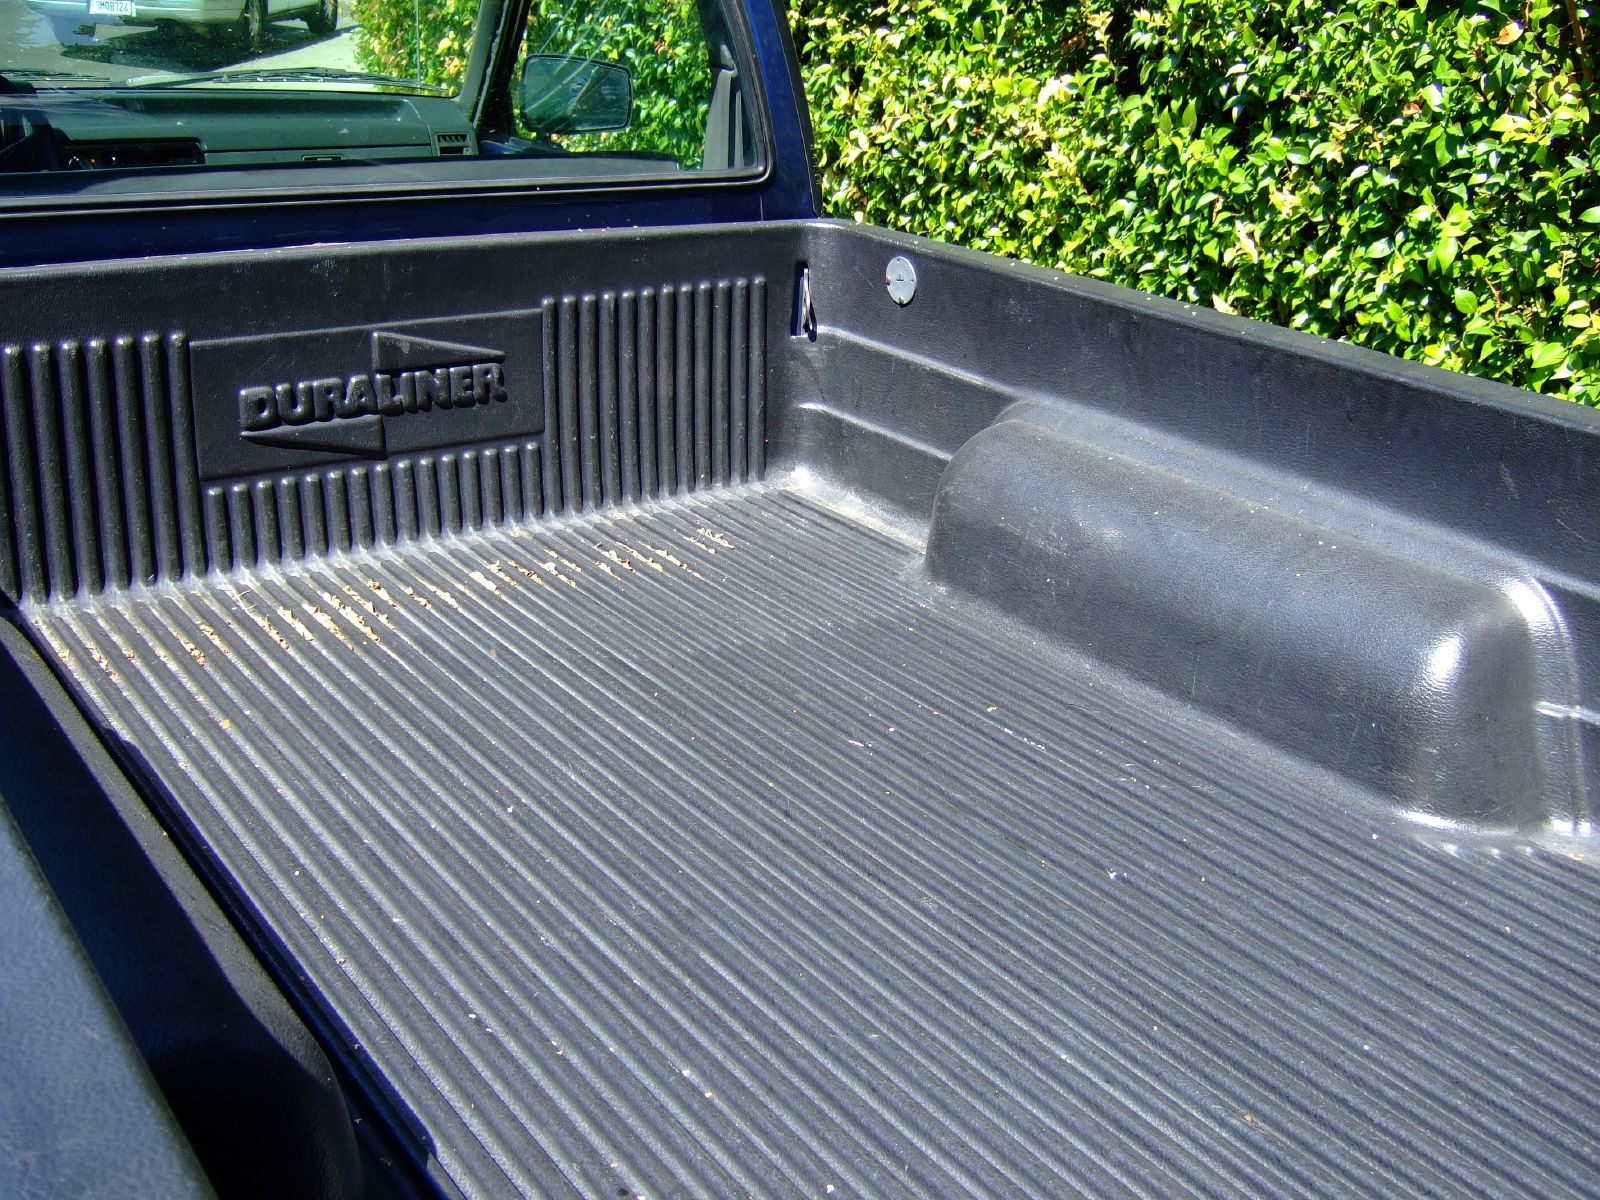 Bed Liner Truck Paint Job Cost